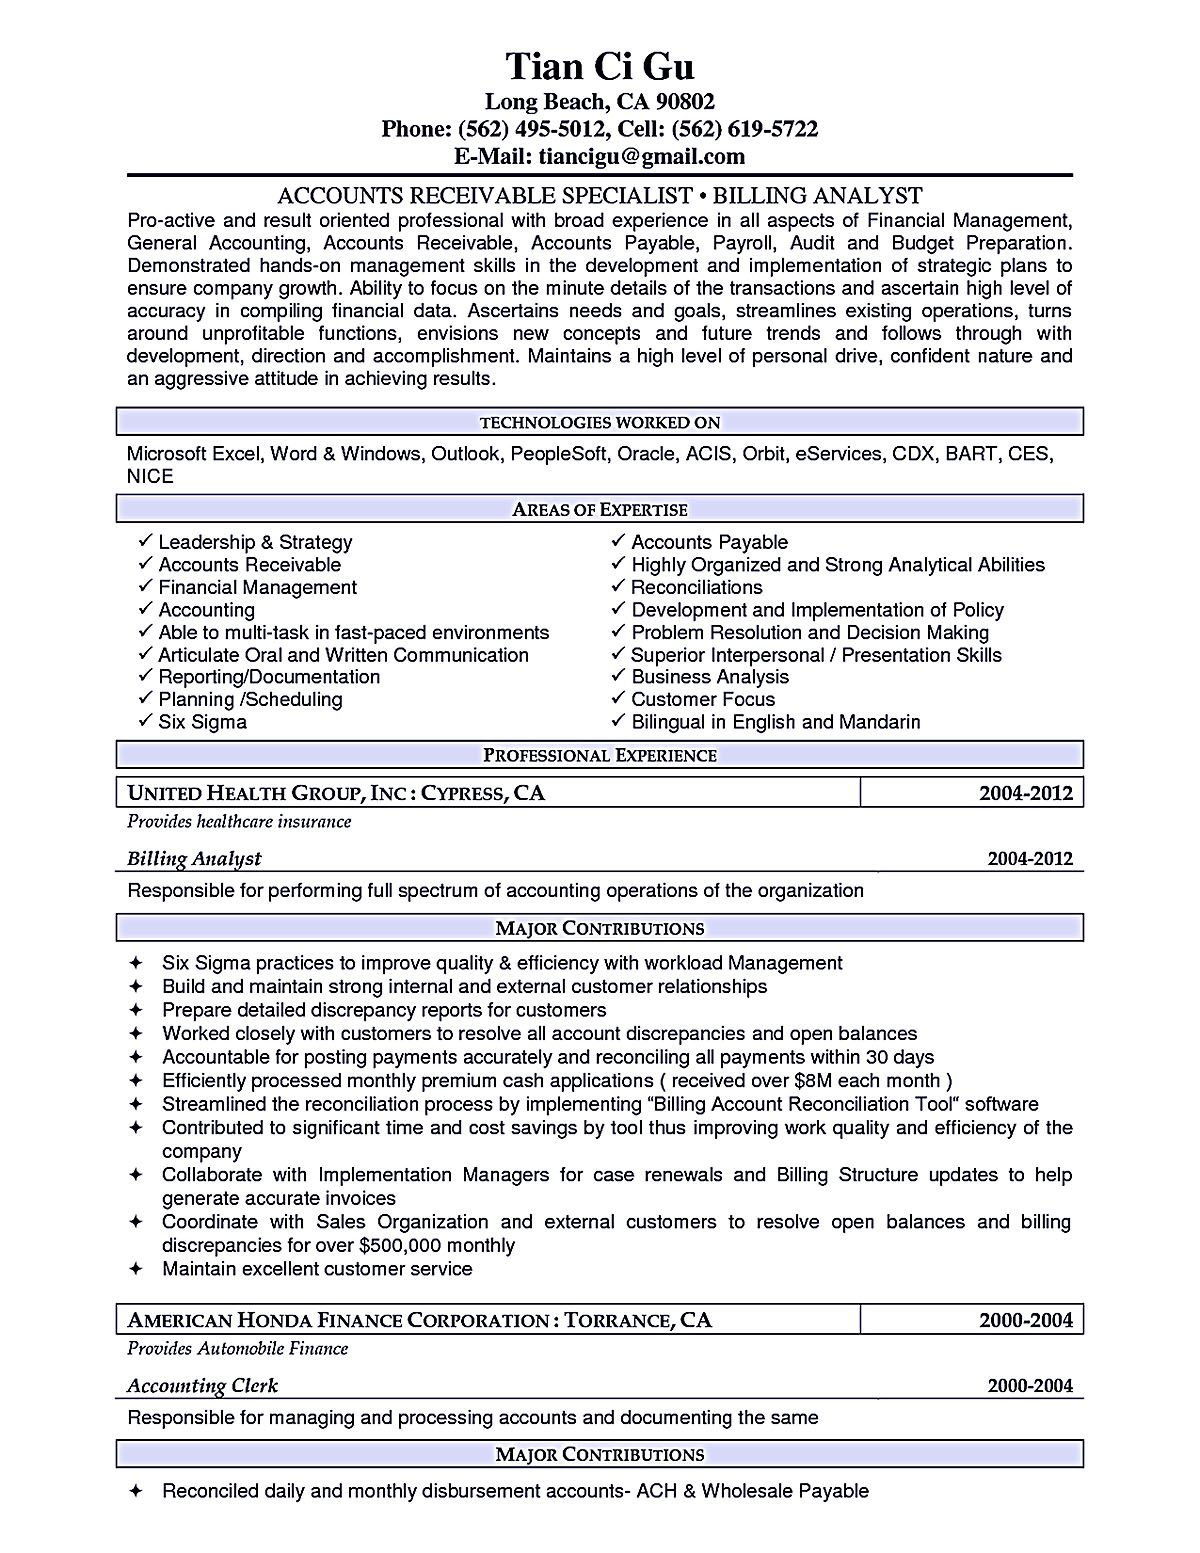 Accounts Receivable Resume Sample Account Receivable Resume Shows Both Technical And